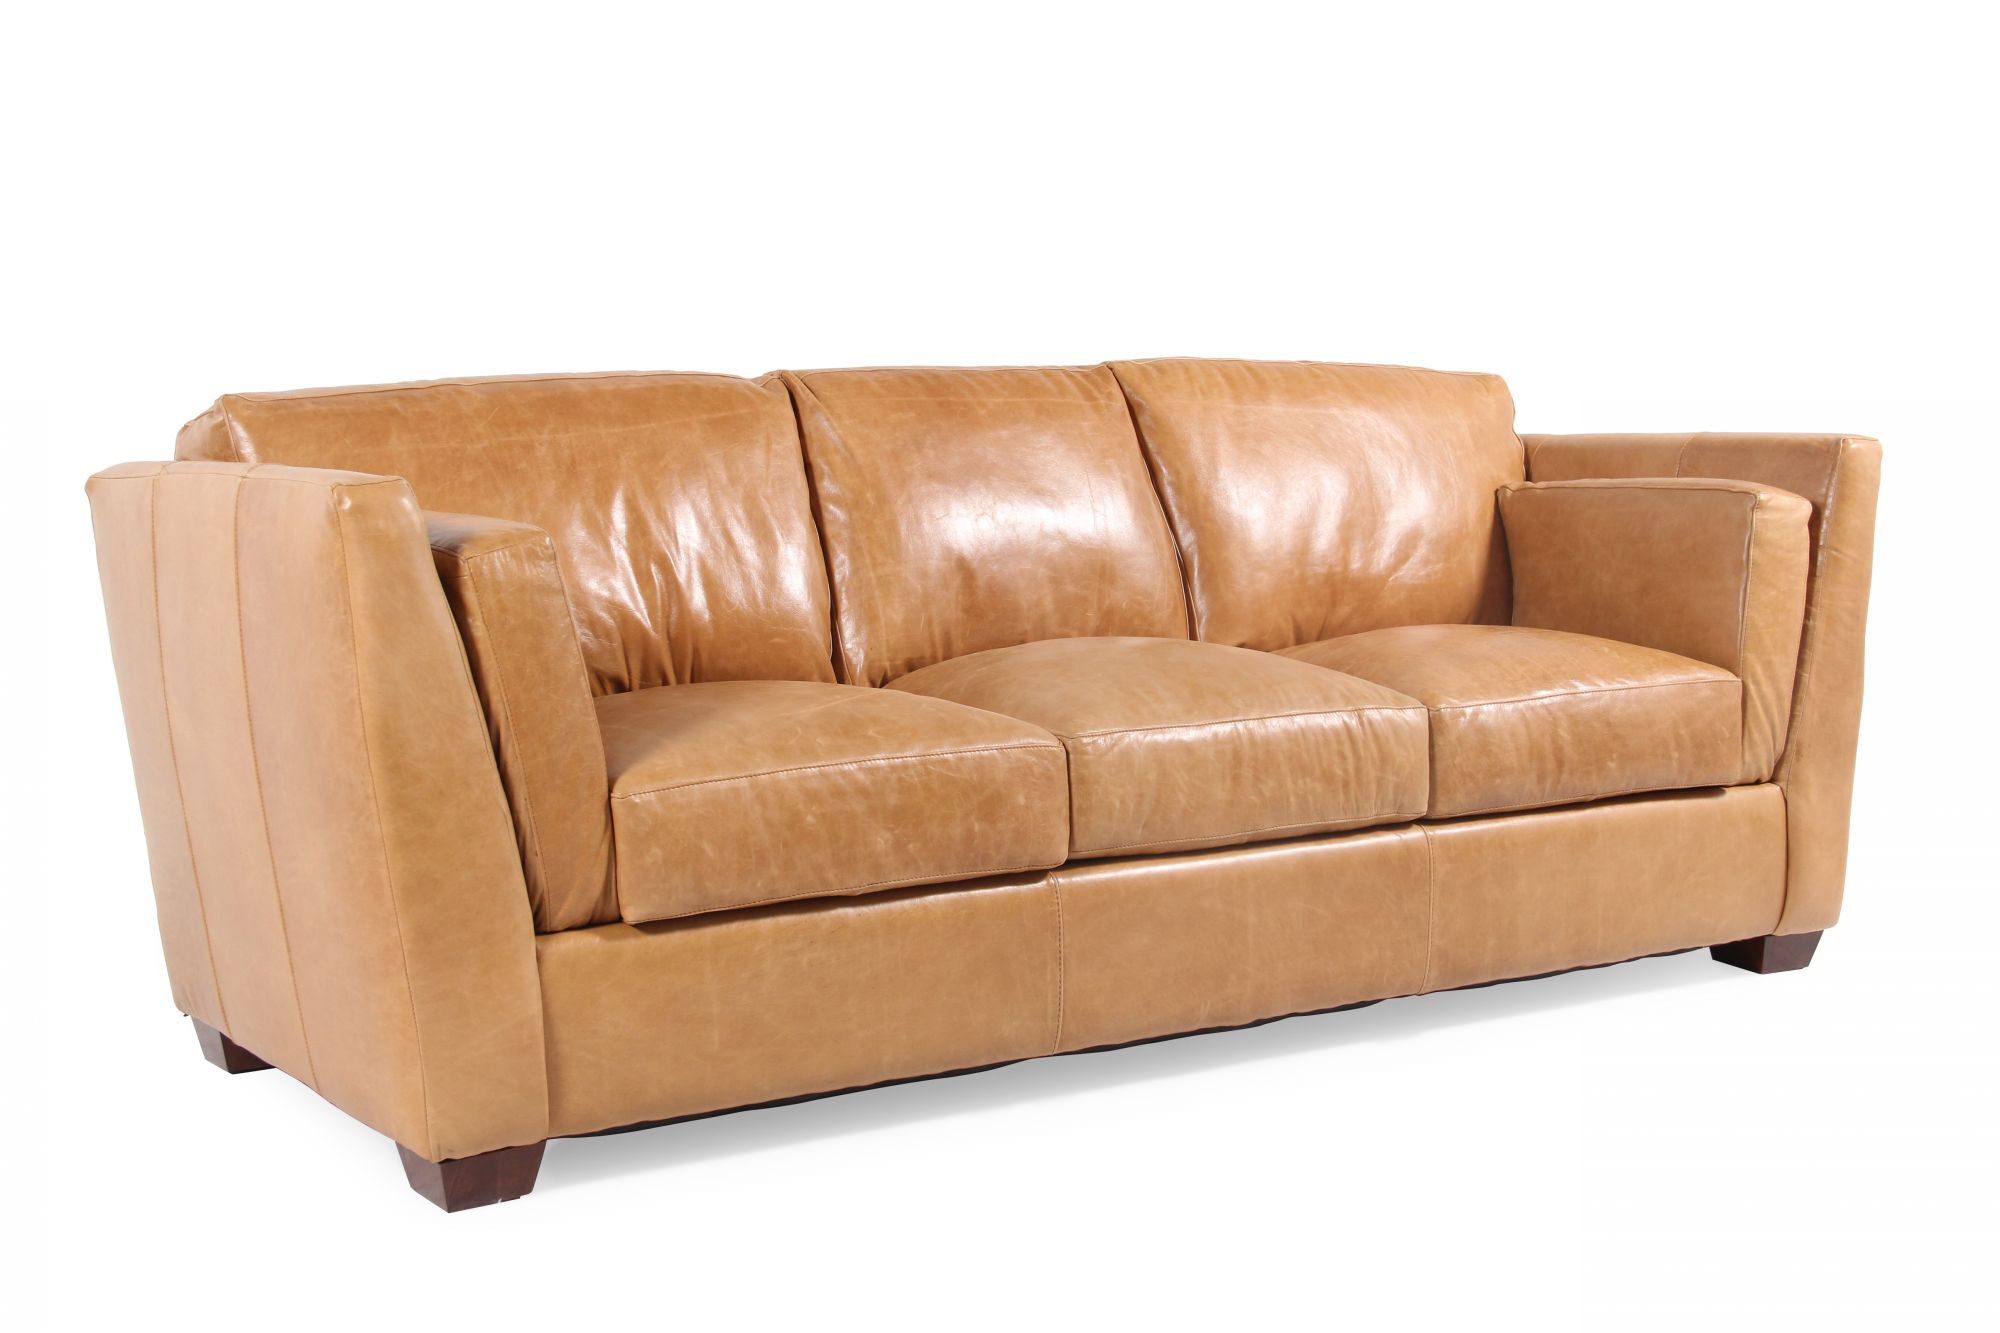 tindall 96 leather sofa how to upholster a rolled arm traditional quot in caramel brown mathis